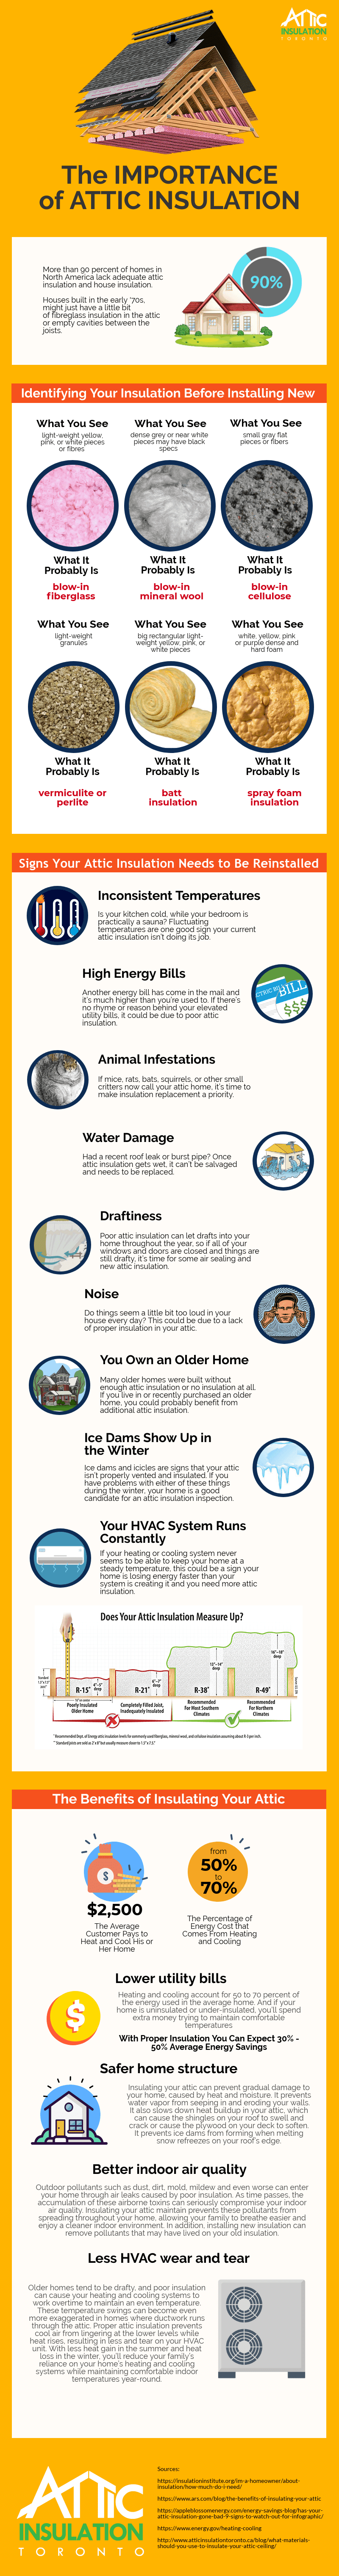 Importance of Attic Insulation Infographic